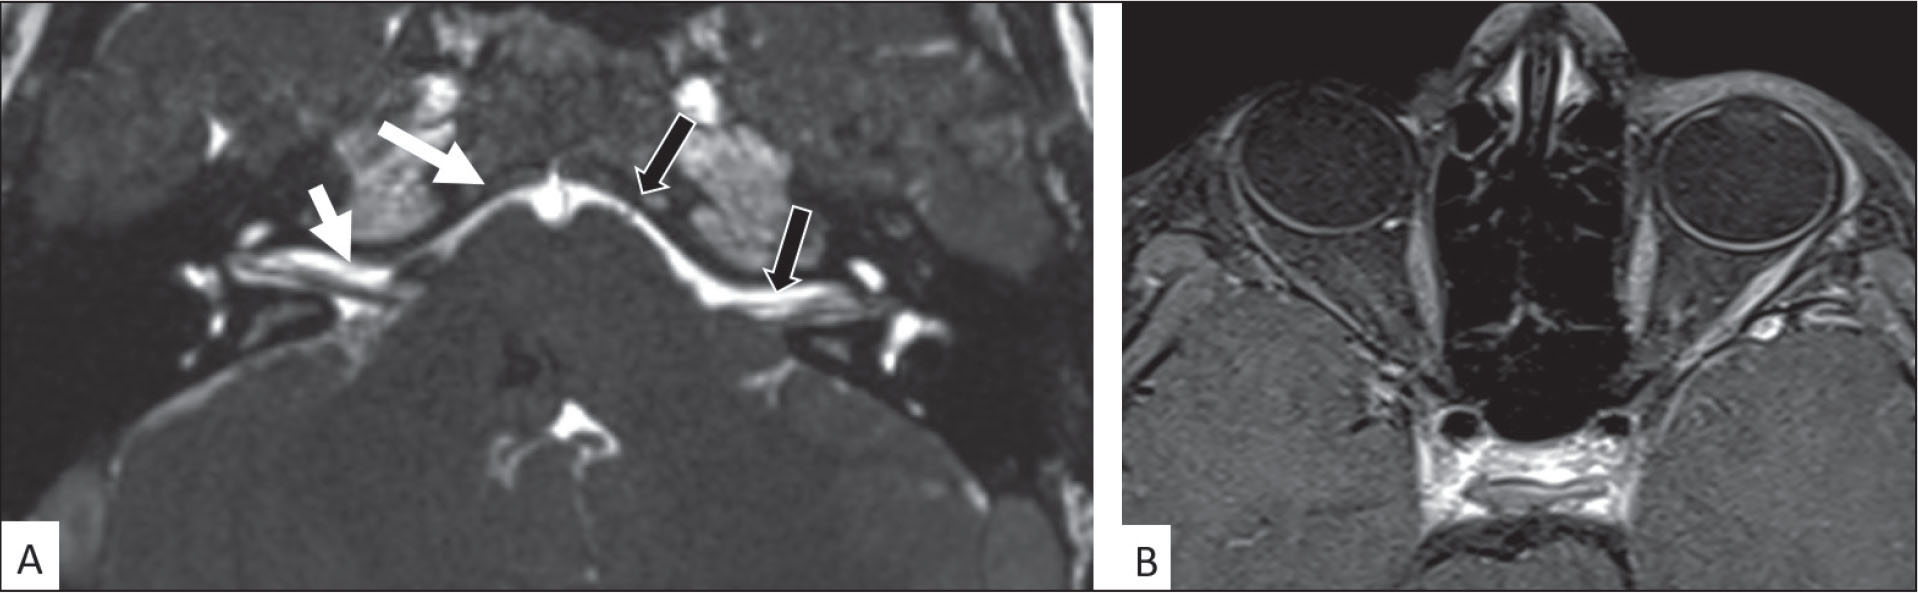 (A) (Axial) Fast imaging employing steady-state acquisition magnetic resonance imaging showing hypoplasia of abducens and facial nerves in pre-pontine cisternal space on the right side (white arrow) and normal abducens and facial nerves on the left side (black arrow). (B) (Orbital) Axial T1-weighted magnetic resonance imaging with contrast shows right lateral rectus atrophy.